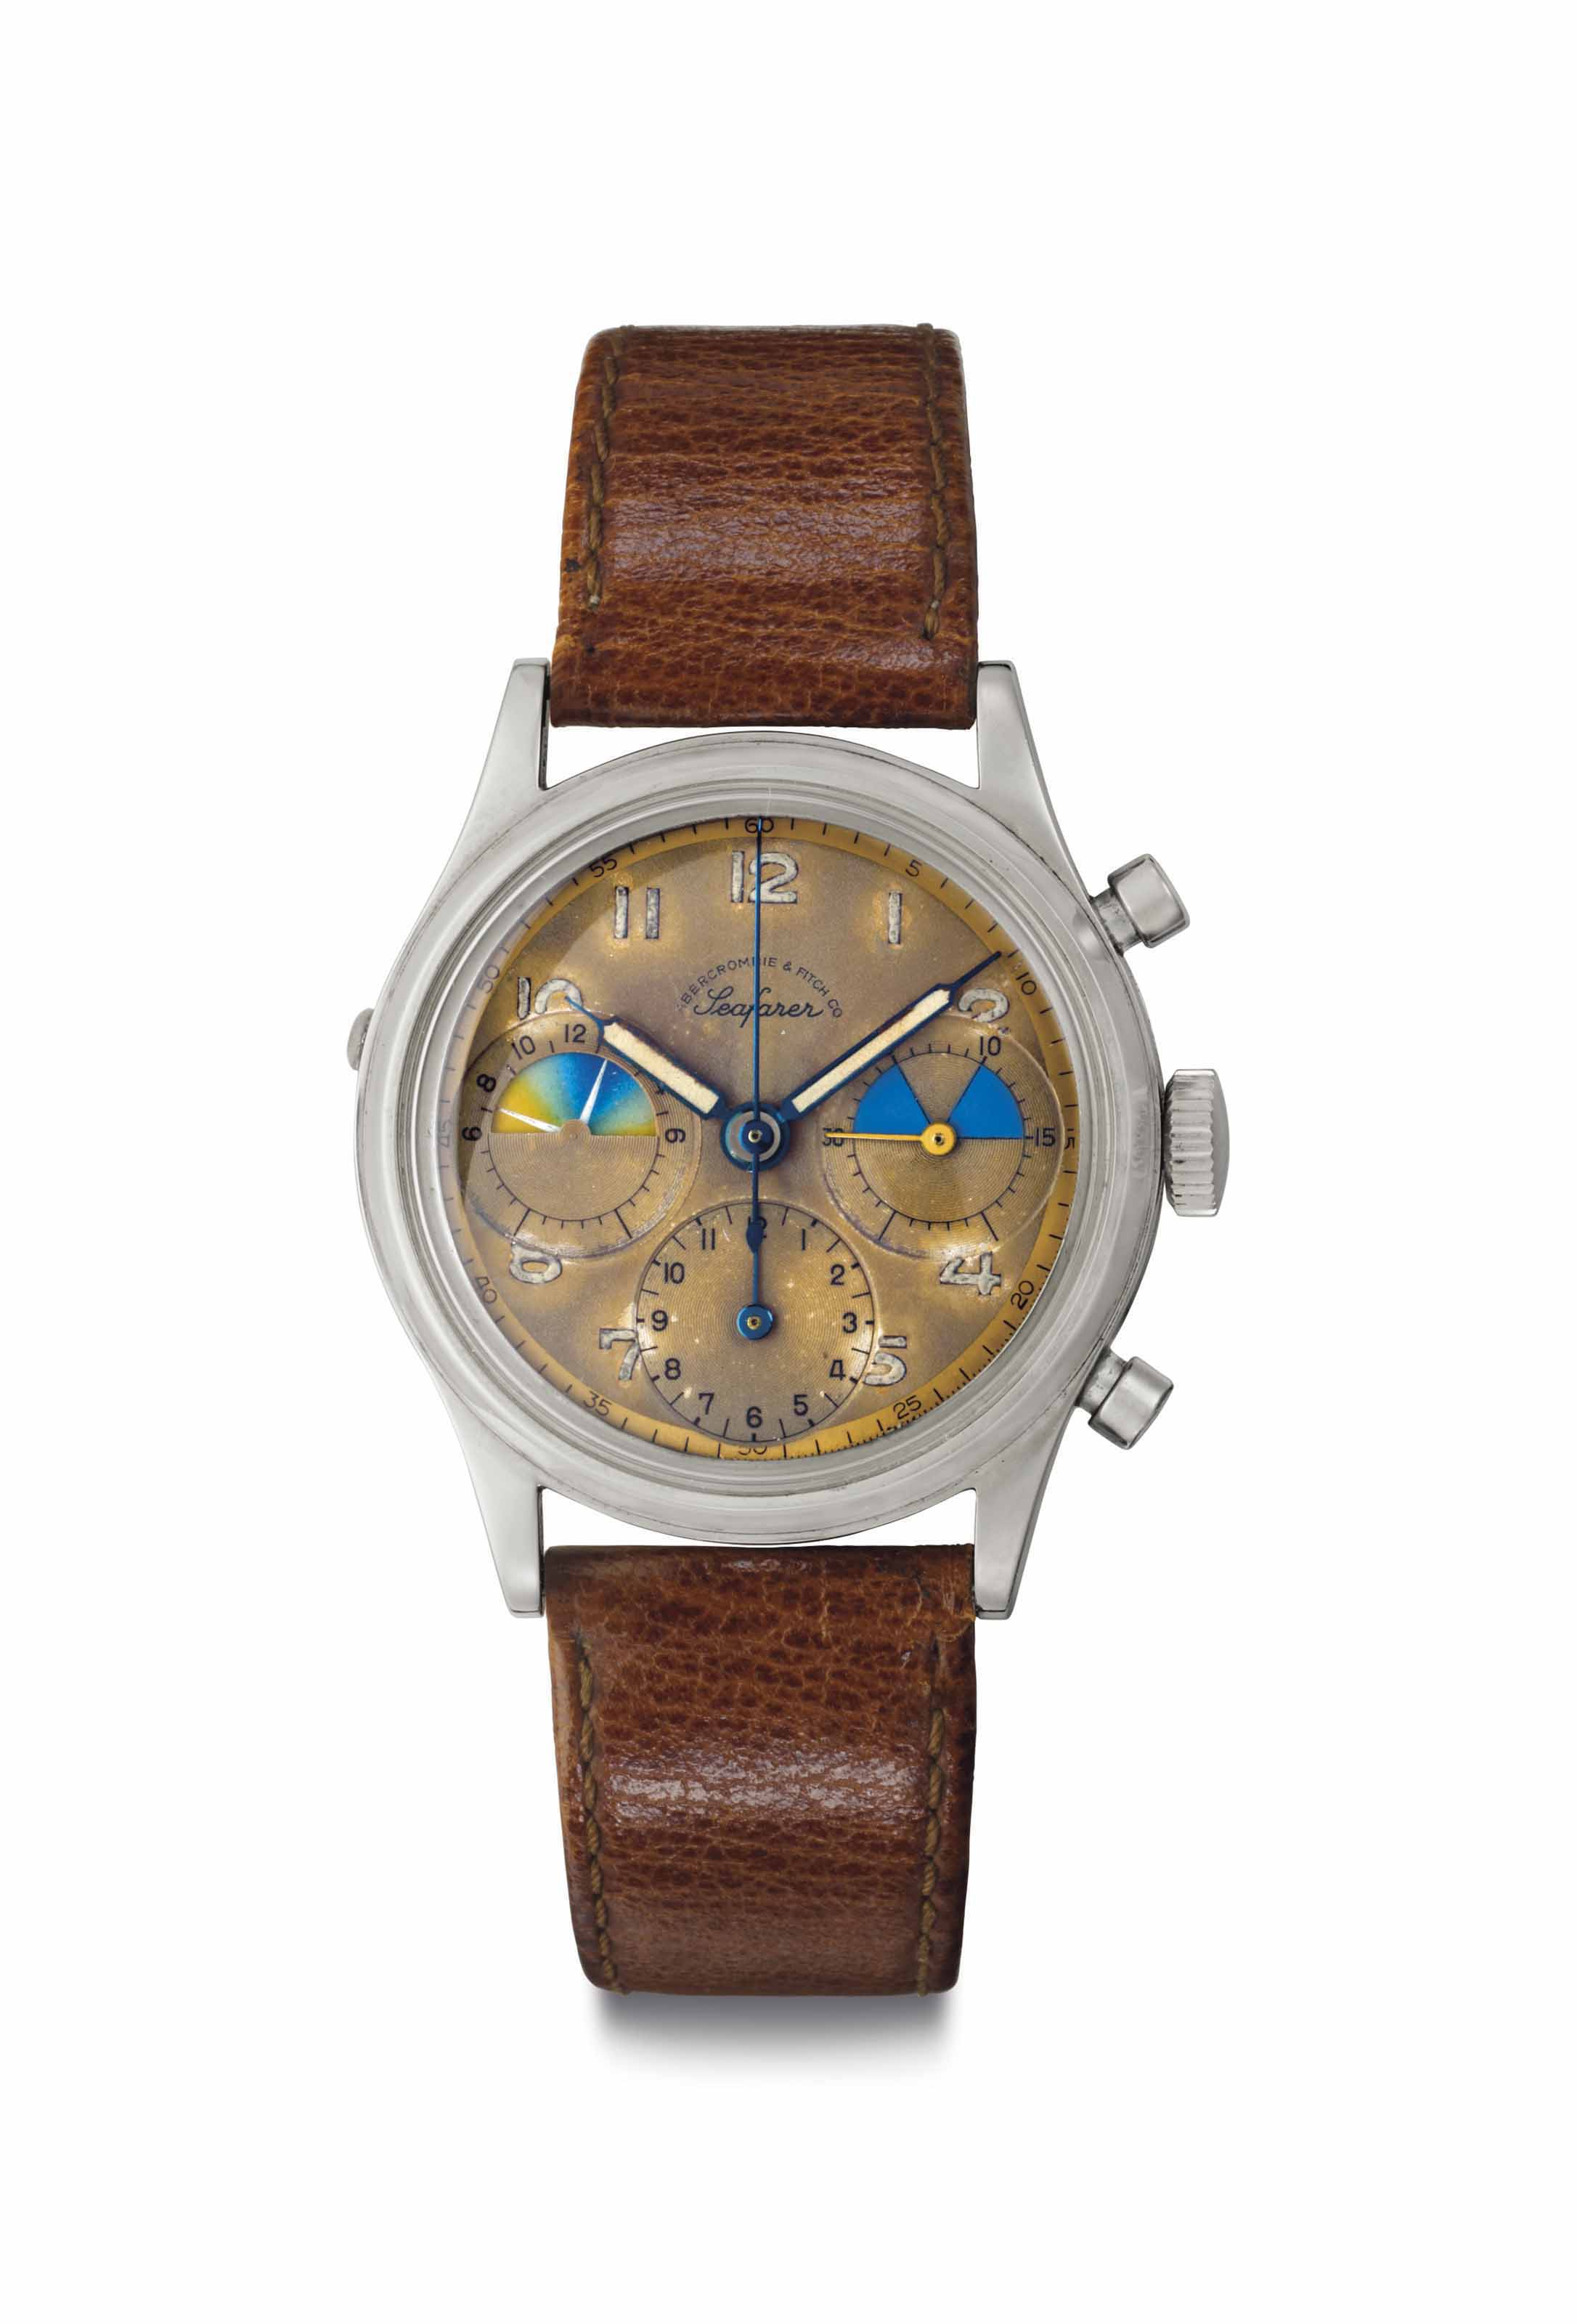 "Heuer. A Very Rare and Early Stainless Steel Chronograph Wristwatch with ""Tropical"" Dial"